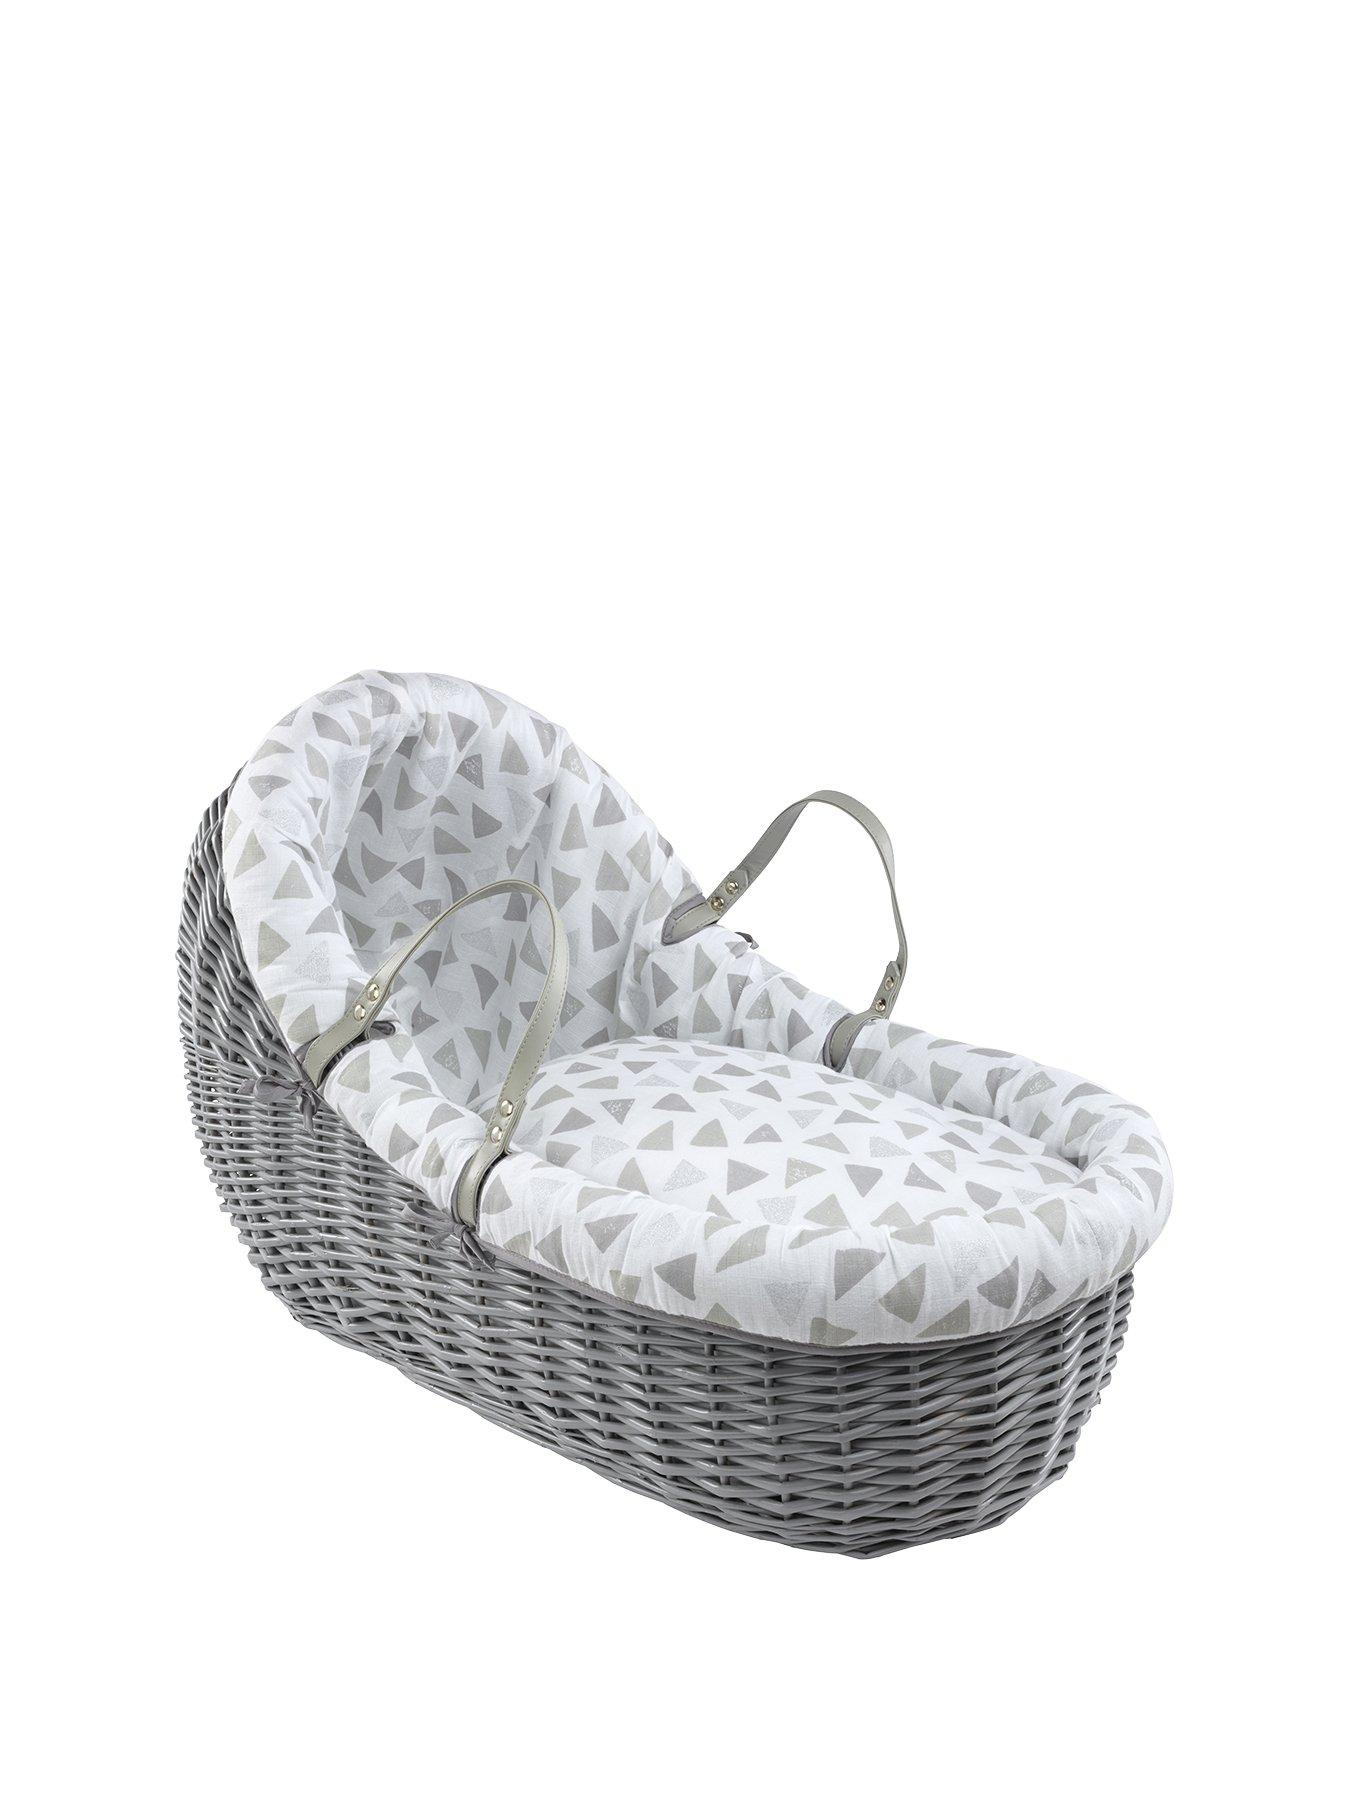 74 X 30 X 3.5 cm Fully Breathable Quilted Moses Basket//PRAM Oval Shaped Bassinet Soft Mattress Size